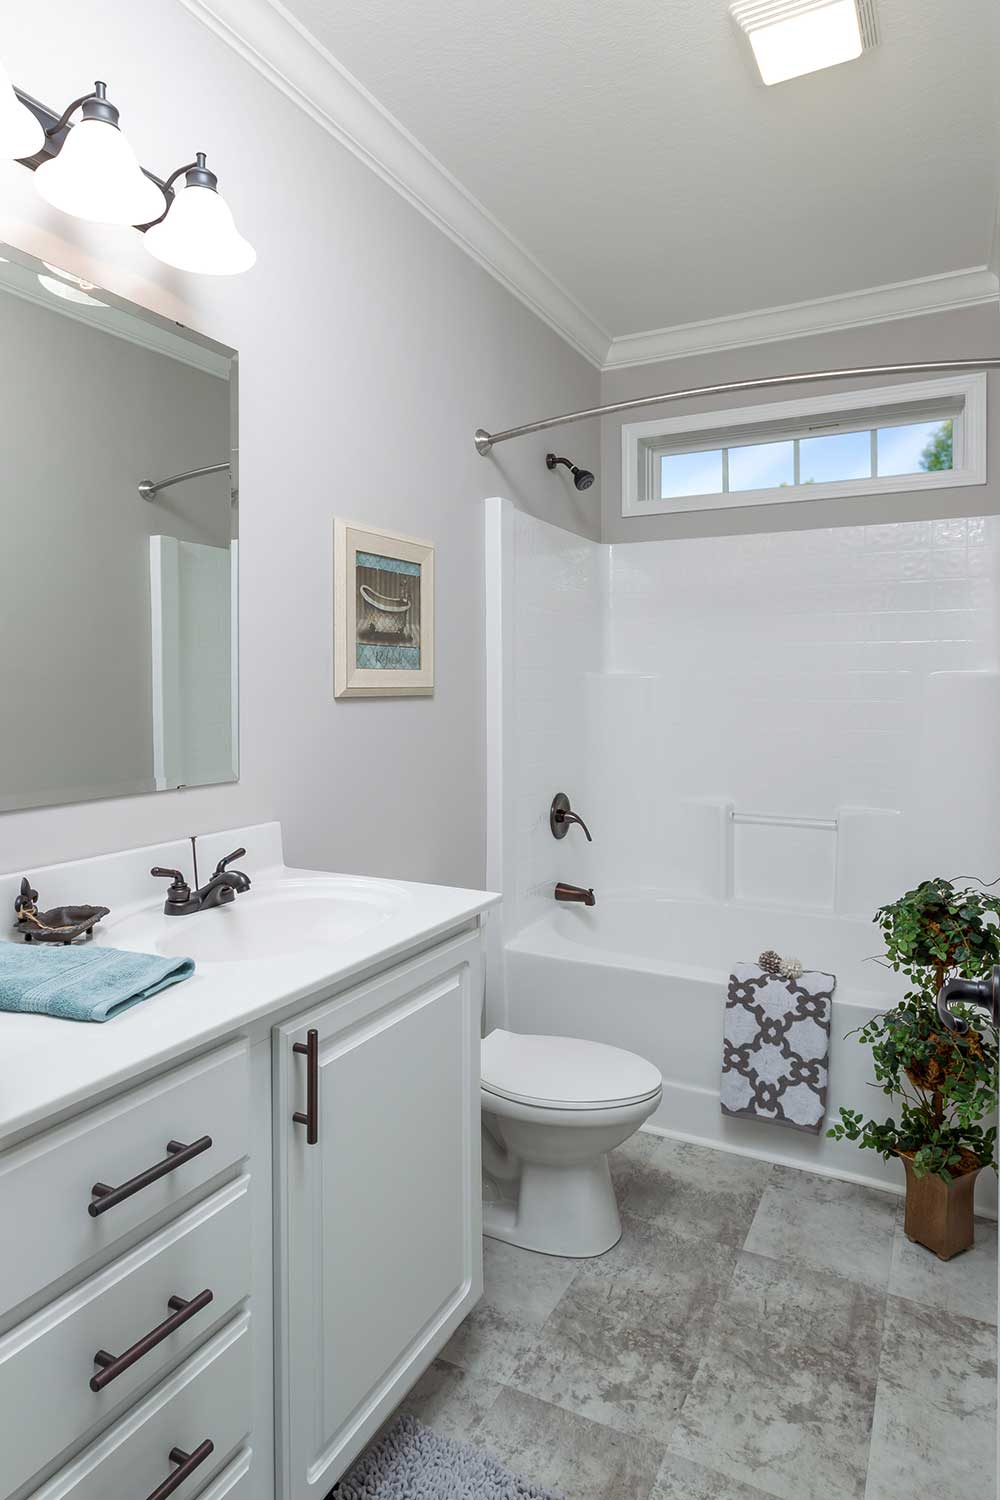 The bathroom of the Franklin Homes The Holly manufactured home from Affordable Homes of Crestview